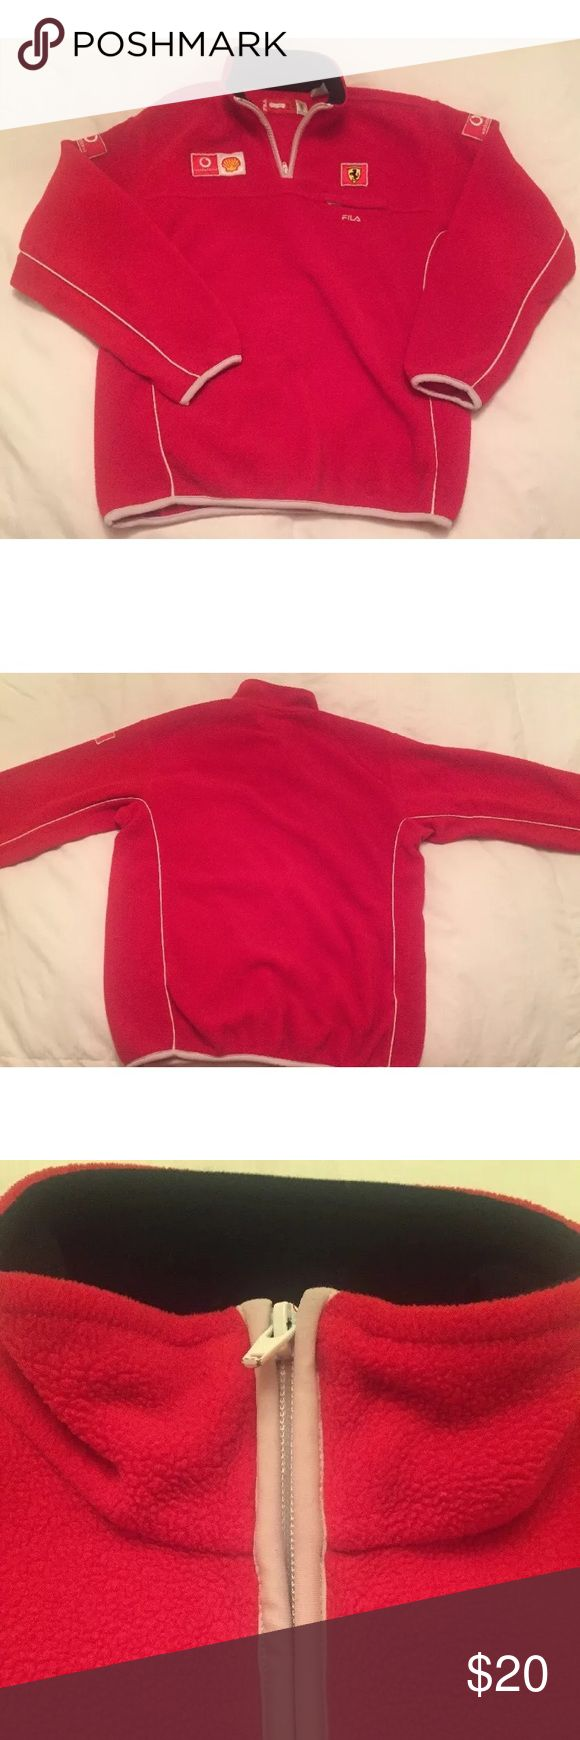 Fila Ferrari Fleece Sweater This is a size large in juniors boys. Has Vodafone and Shell symbols. Front collar zipper. White trimming. Front left chest pocket. Please view pictures carefully for sizing. Fila Shirts & Tops Sweaters